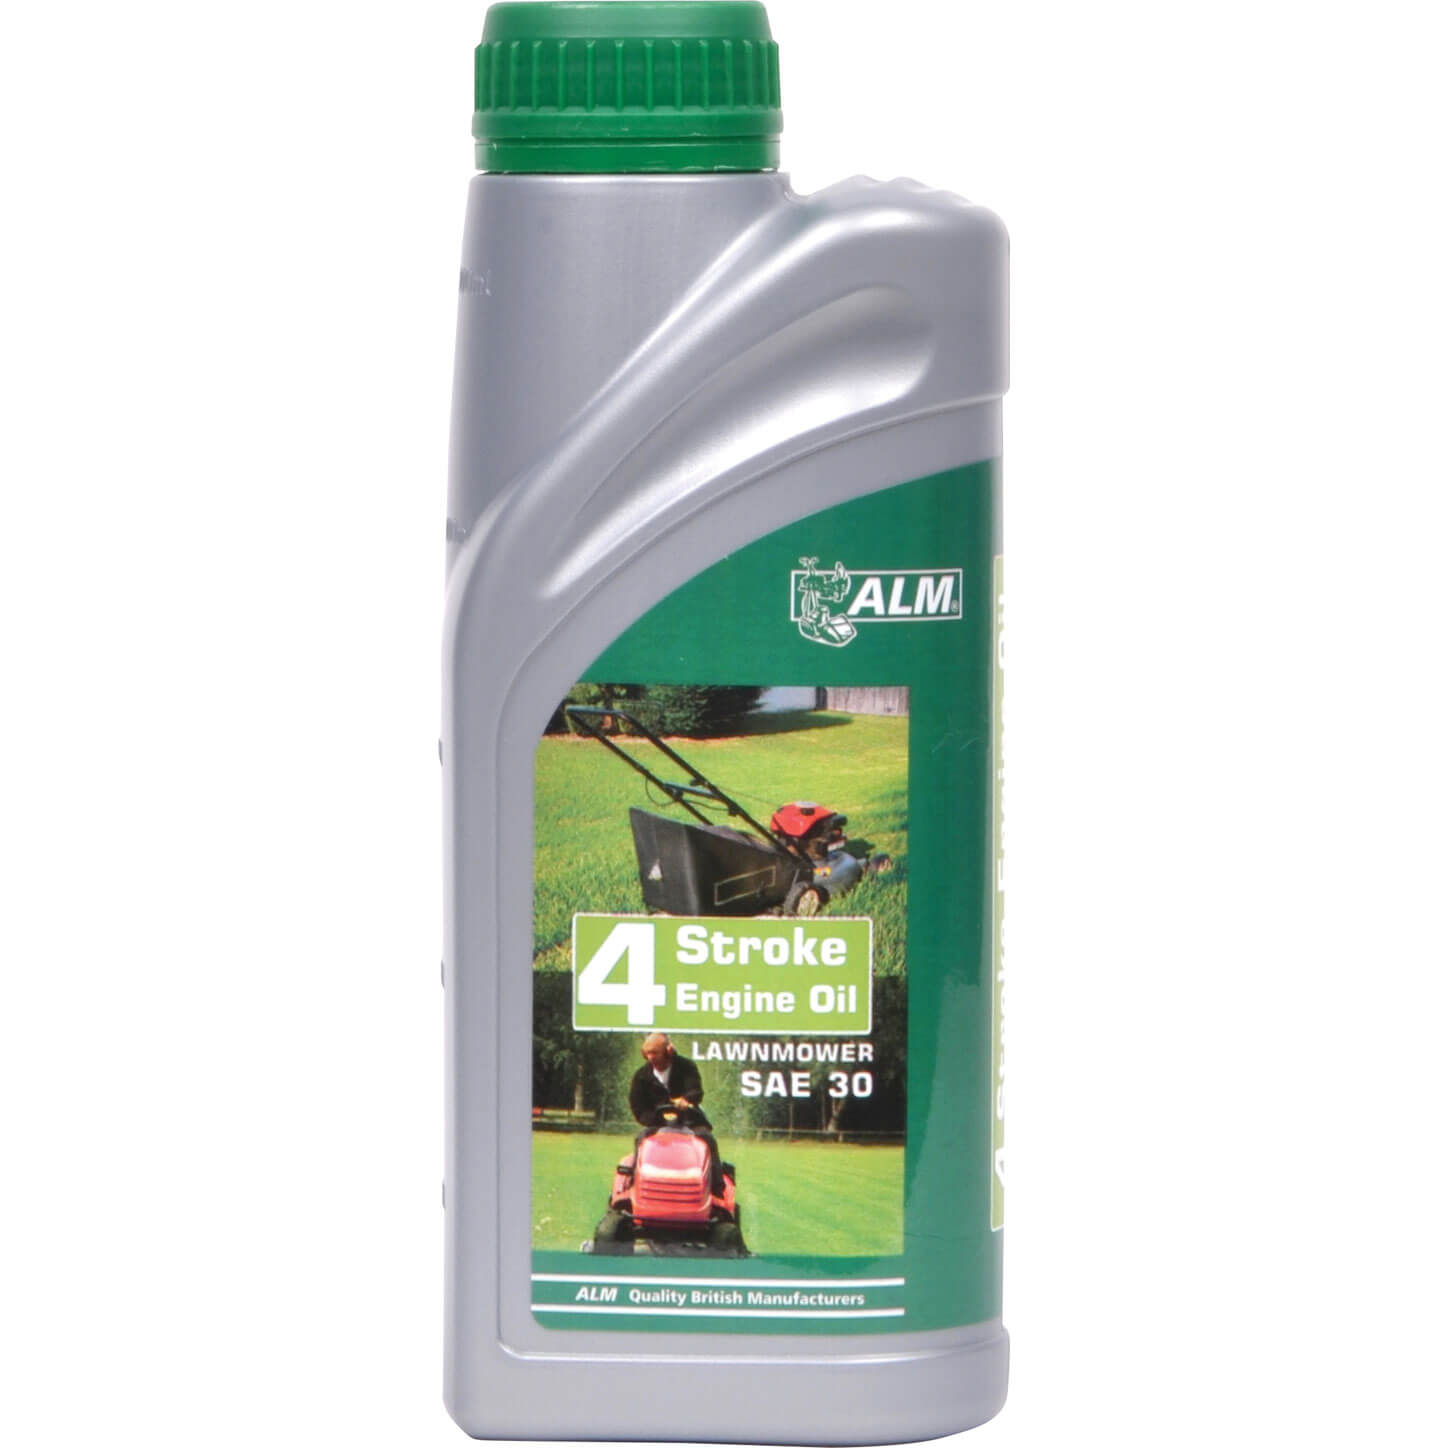 4 Stroke Oil 500ml for Garden Tools & Lawnmowers